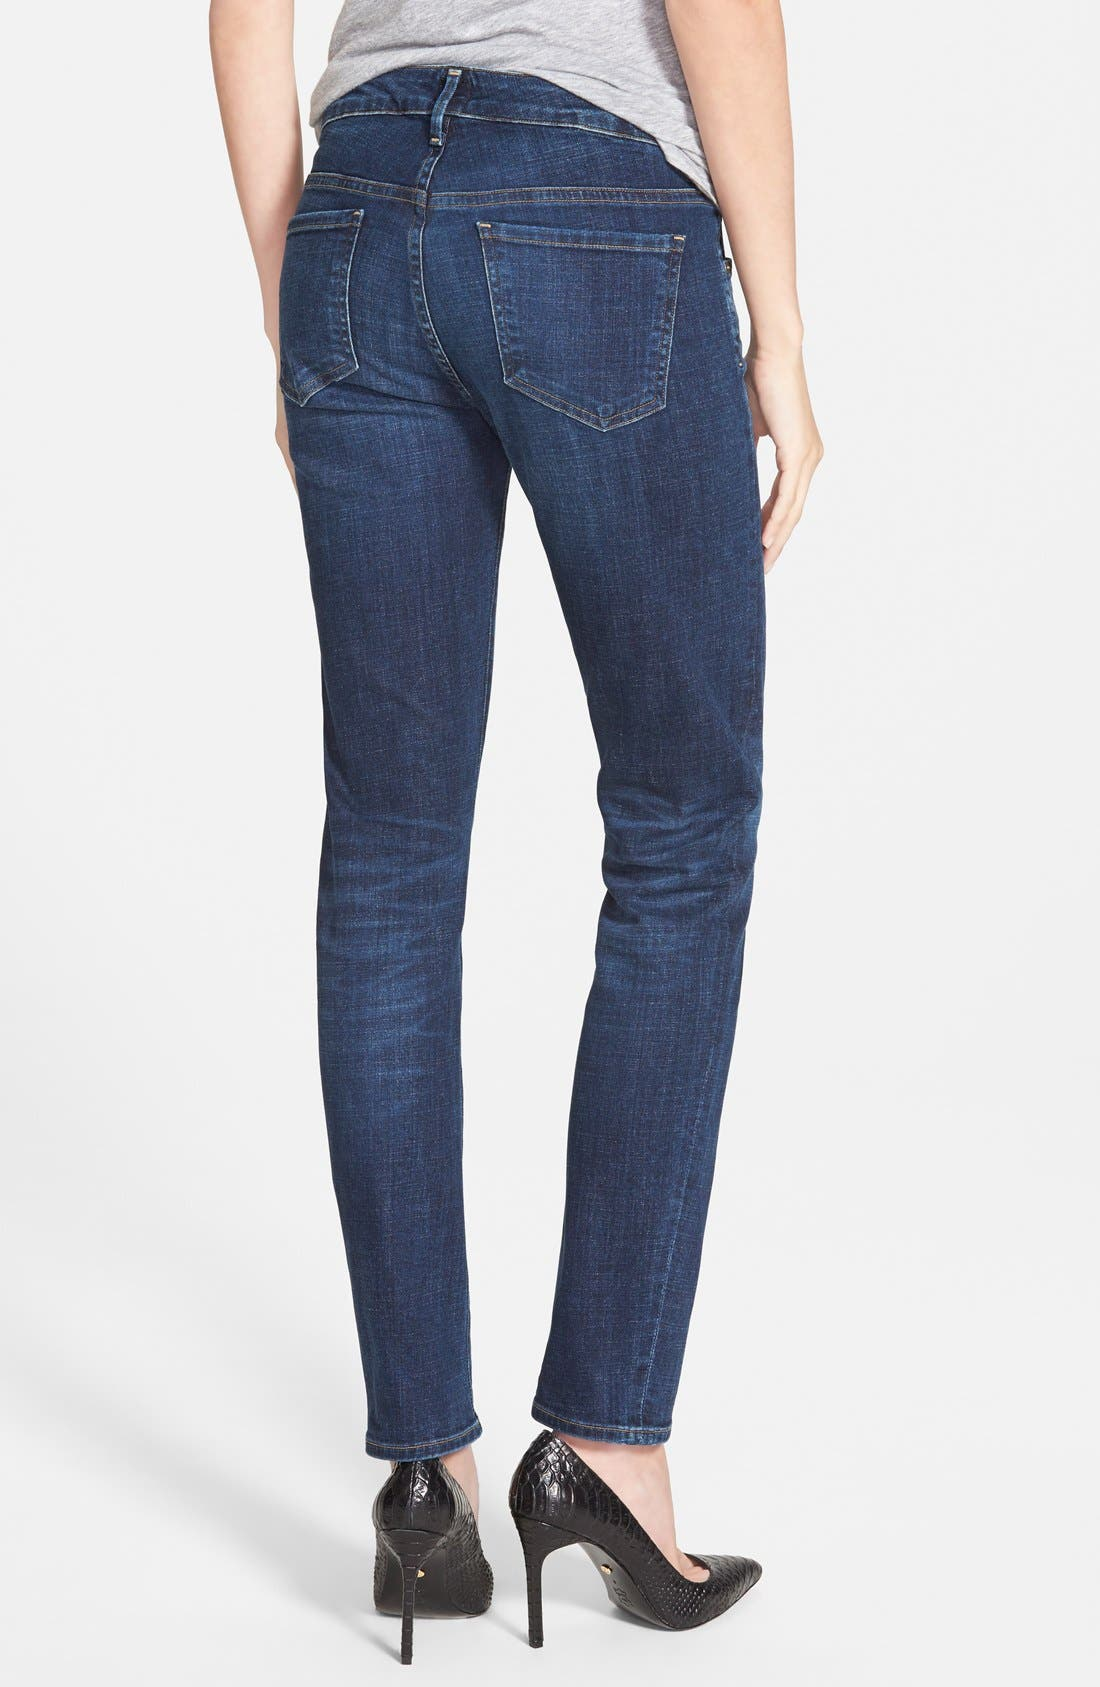 'Arielle' Mid Rise Skinny Jeans,                             Alternate thumbnail 6, color,                             400